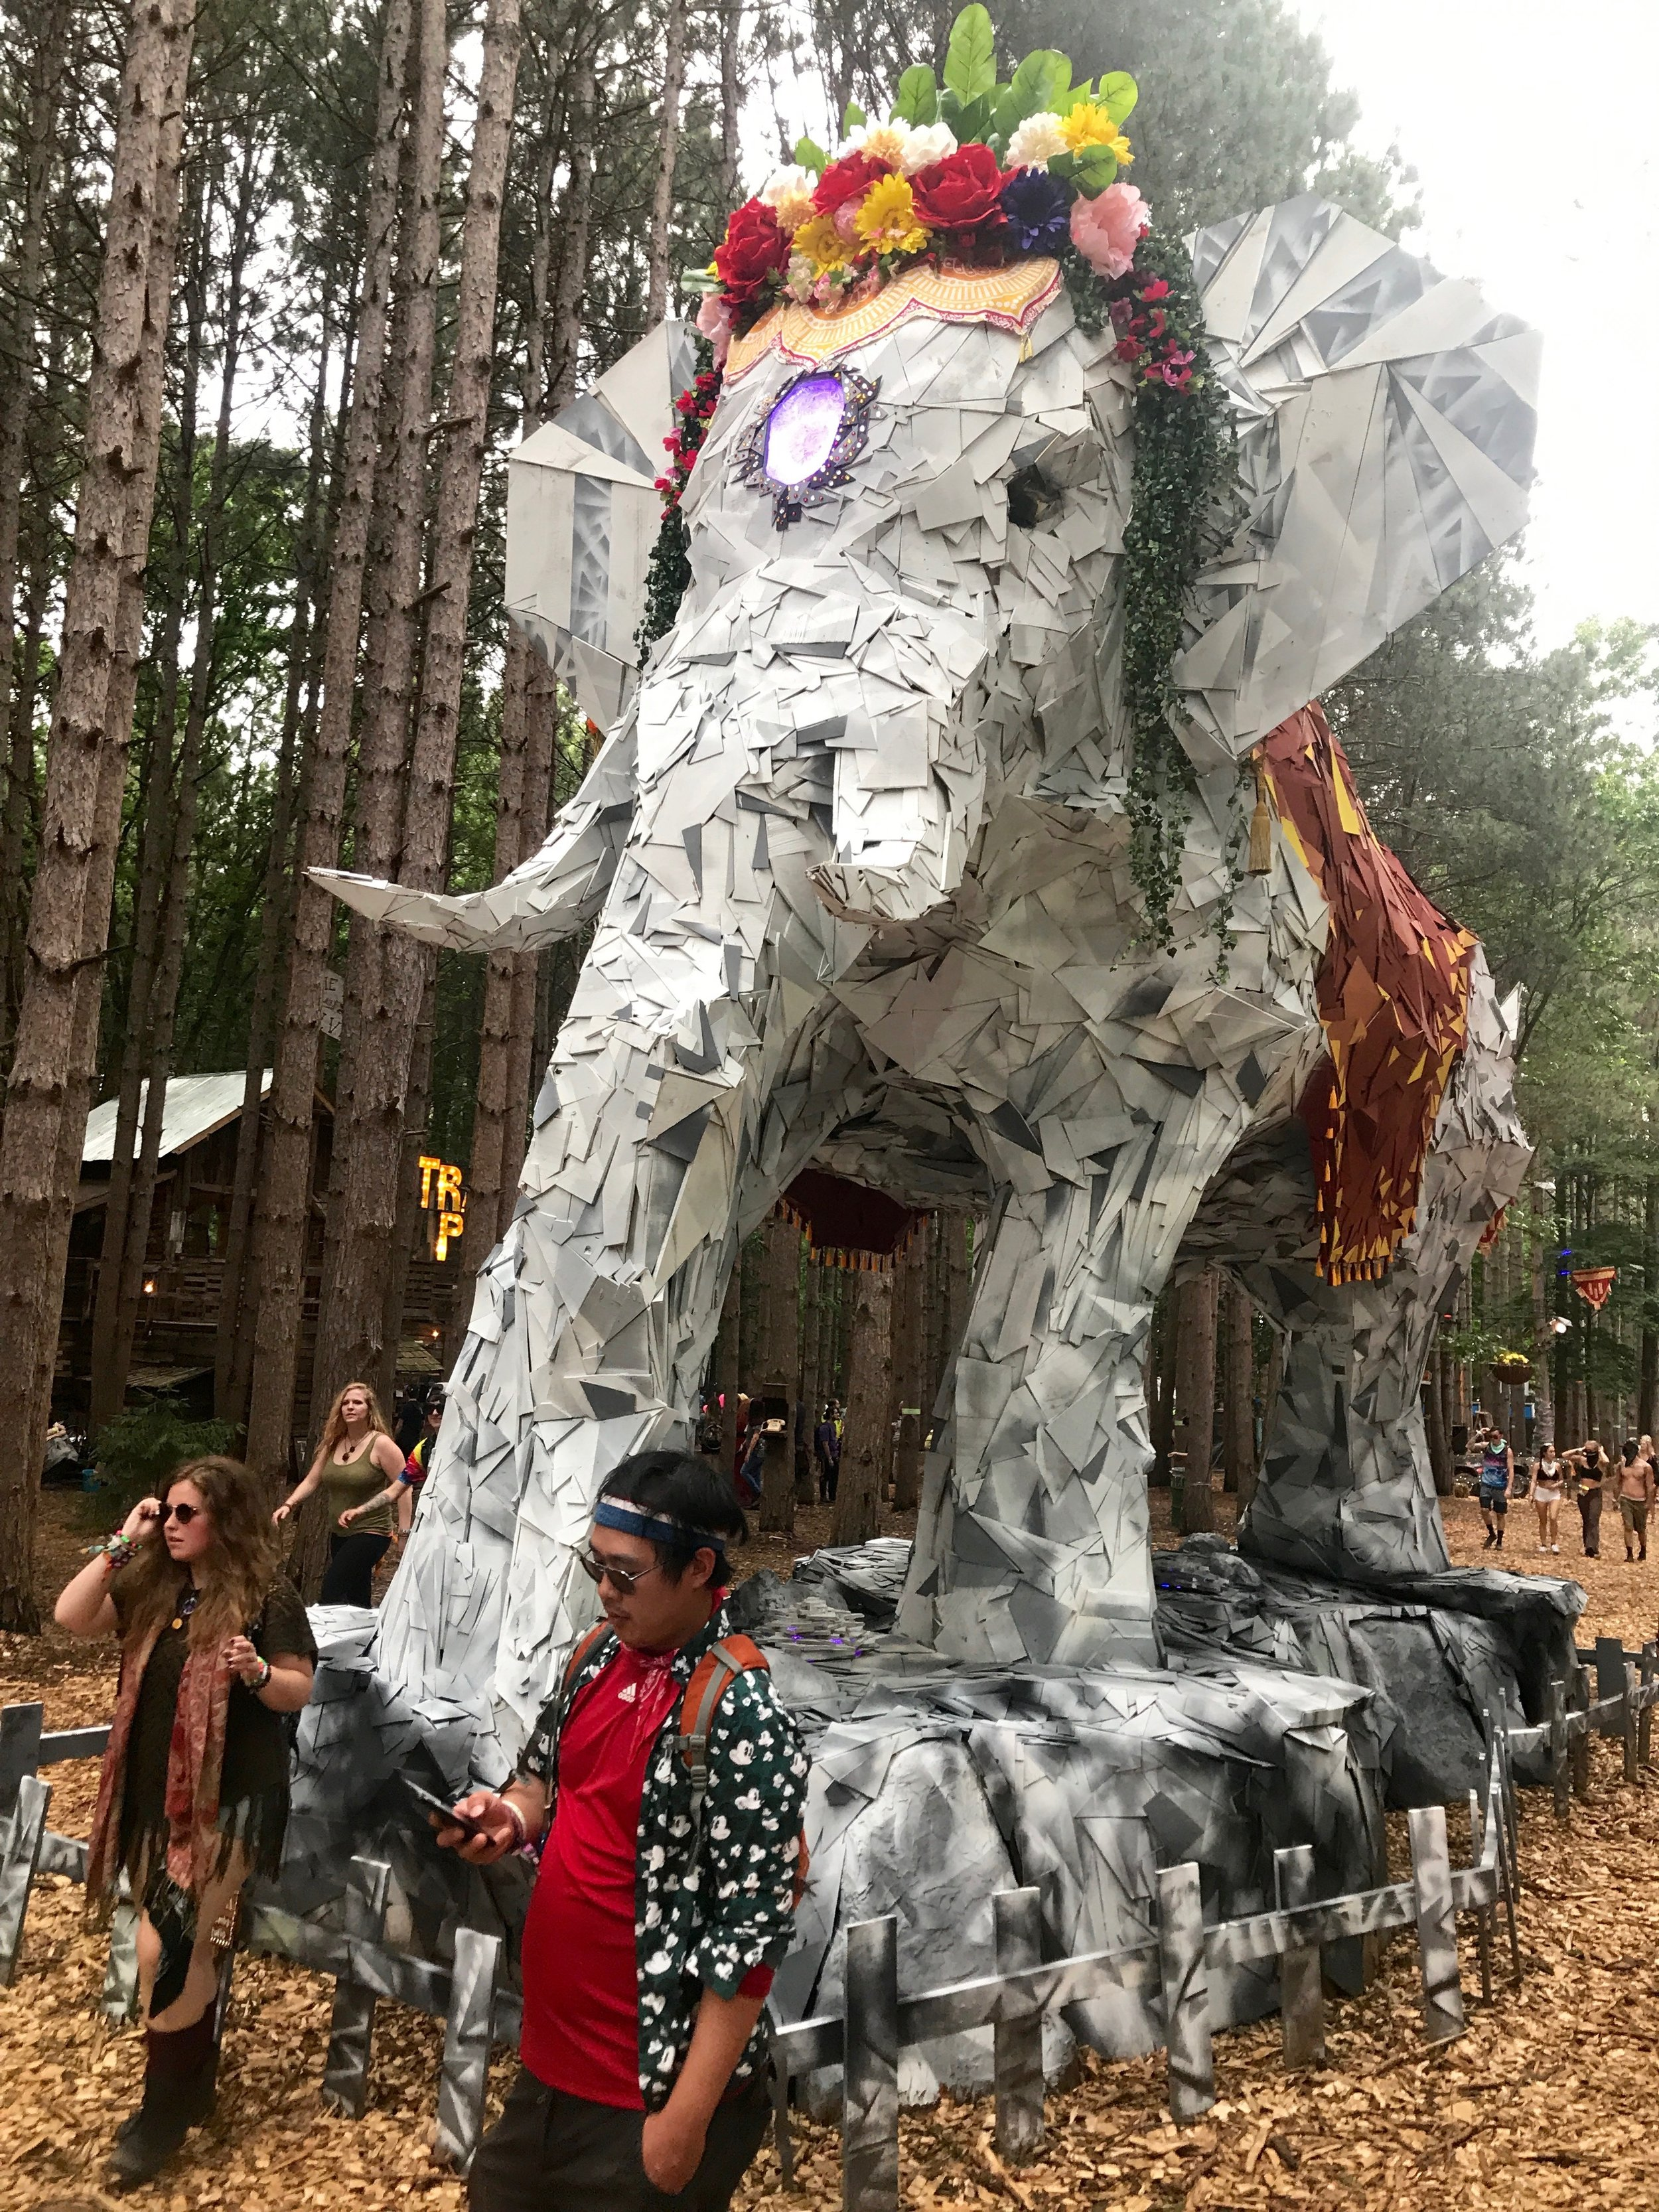 Elephant installation owning the forest